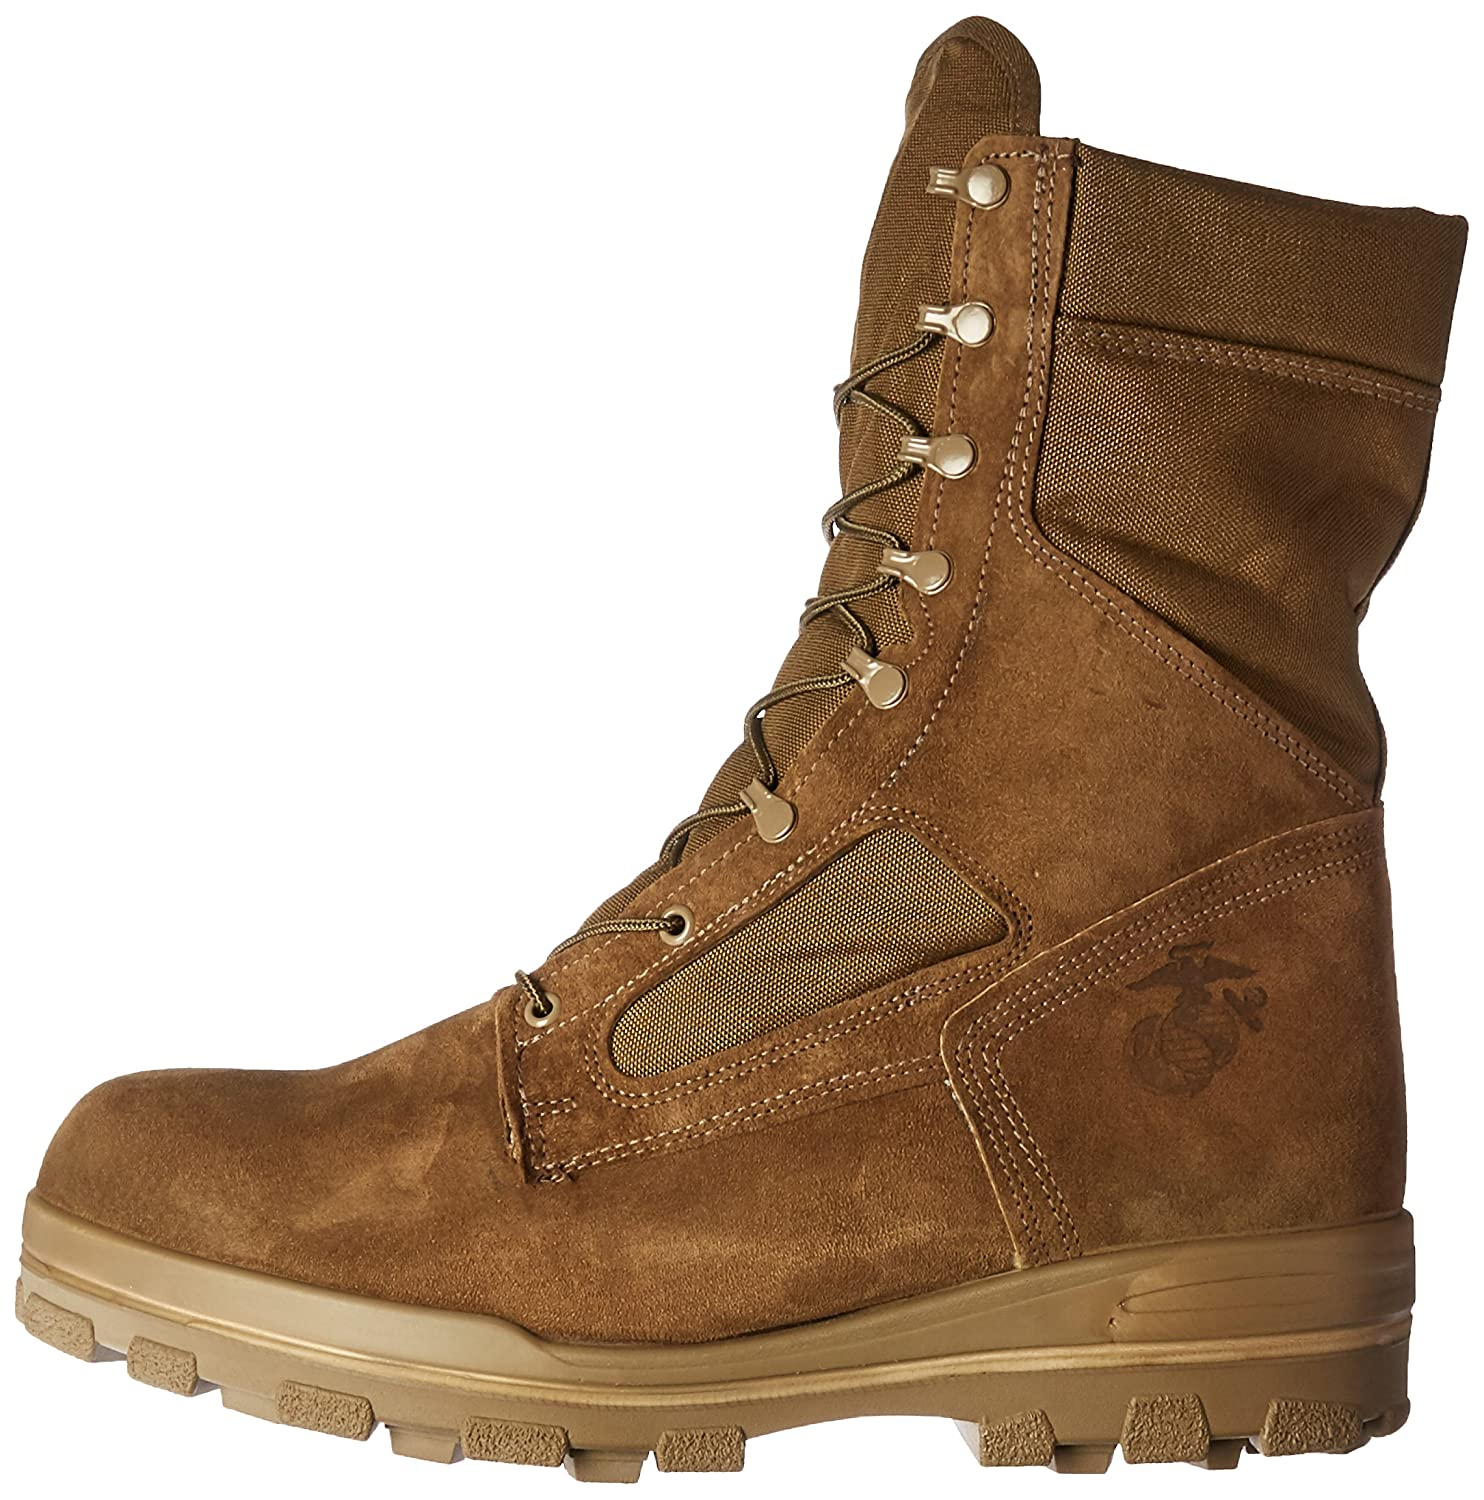 Bates Mens Usmc Durashocks Hot Weather Military and Tactical Boot